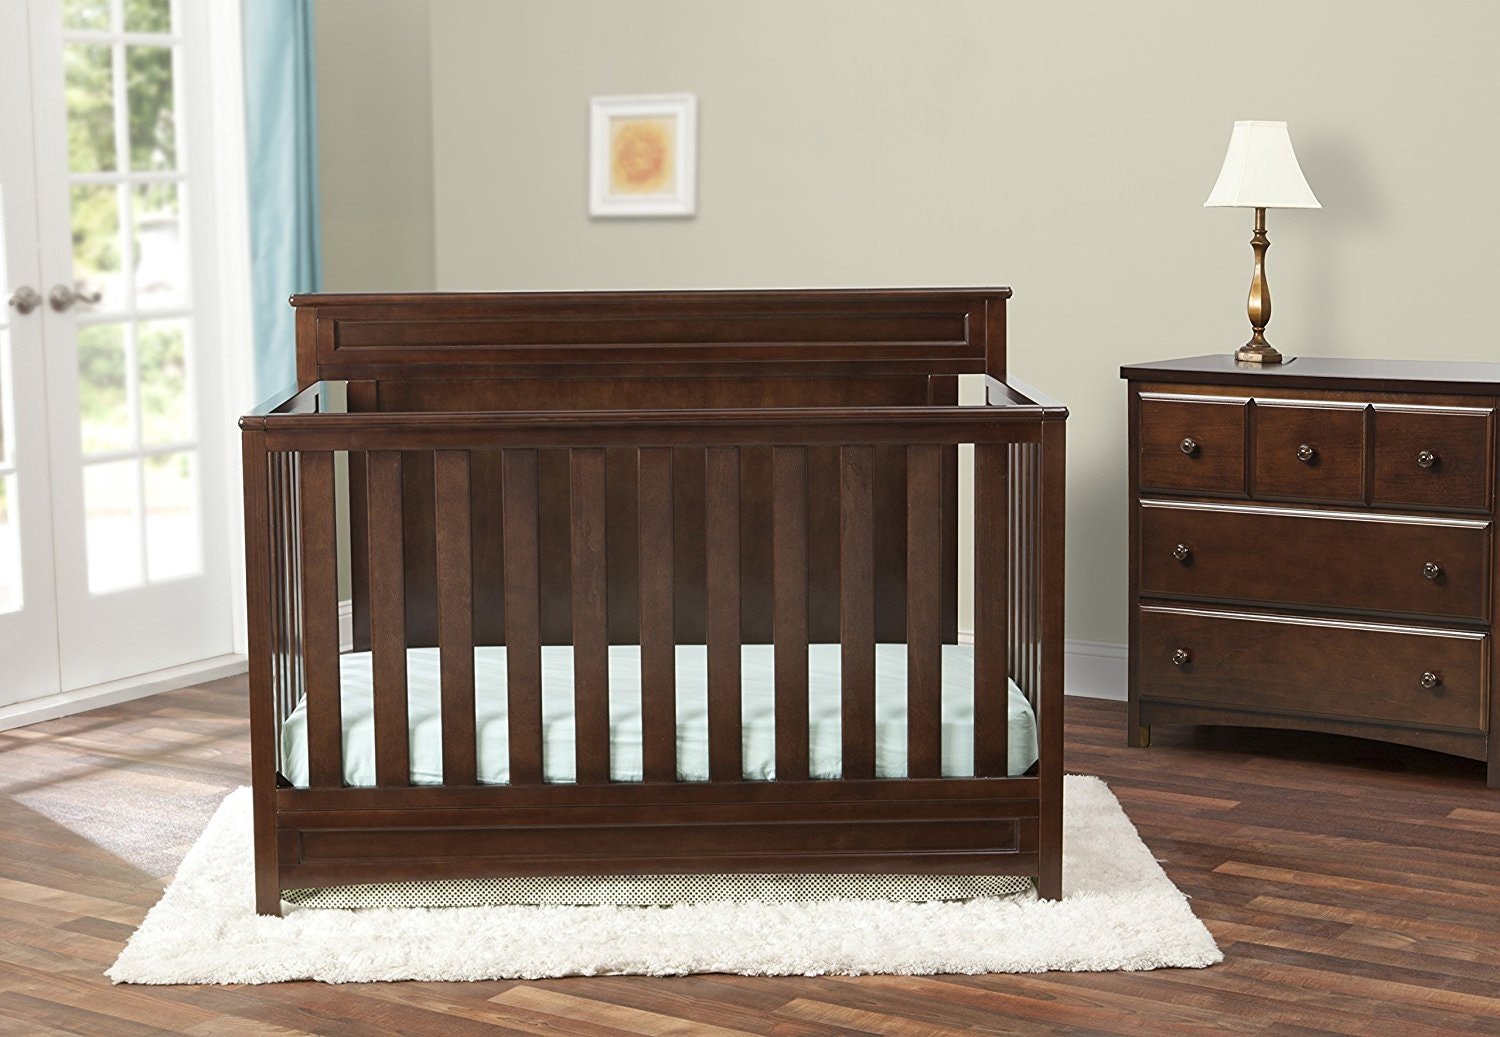 Major Convertible Crib Sale On Amazon Score A Delta Crib For Way Less